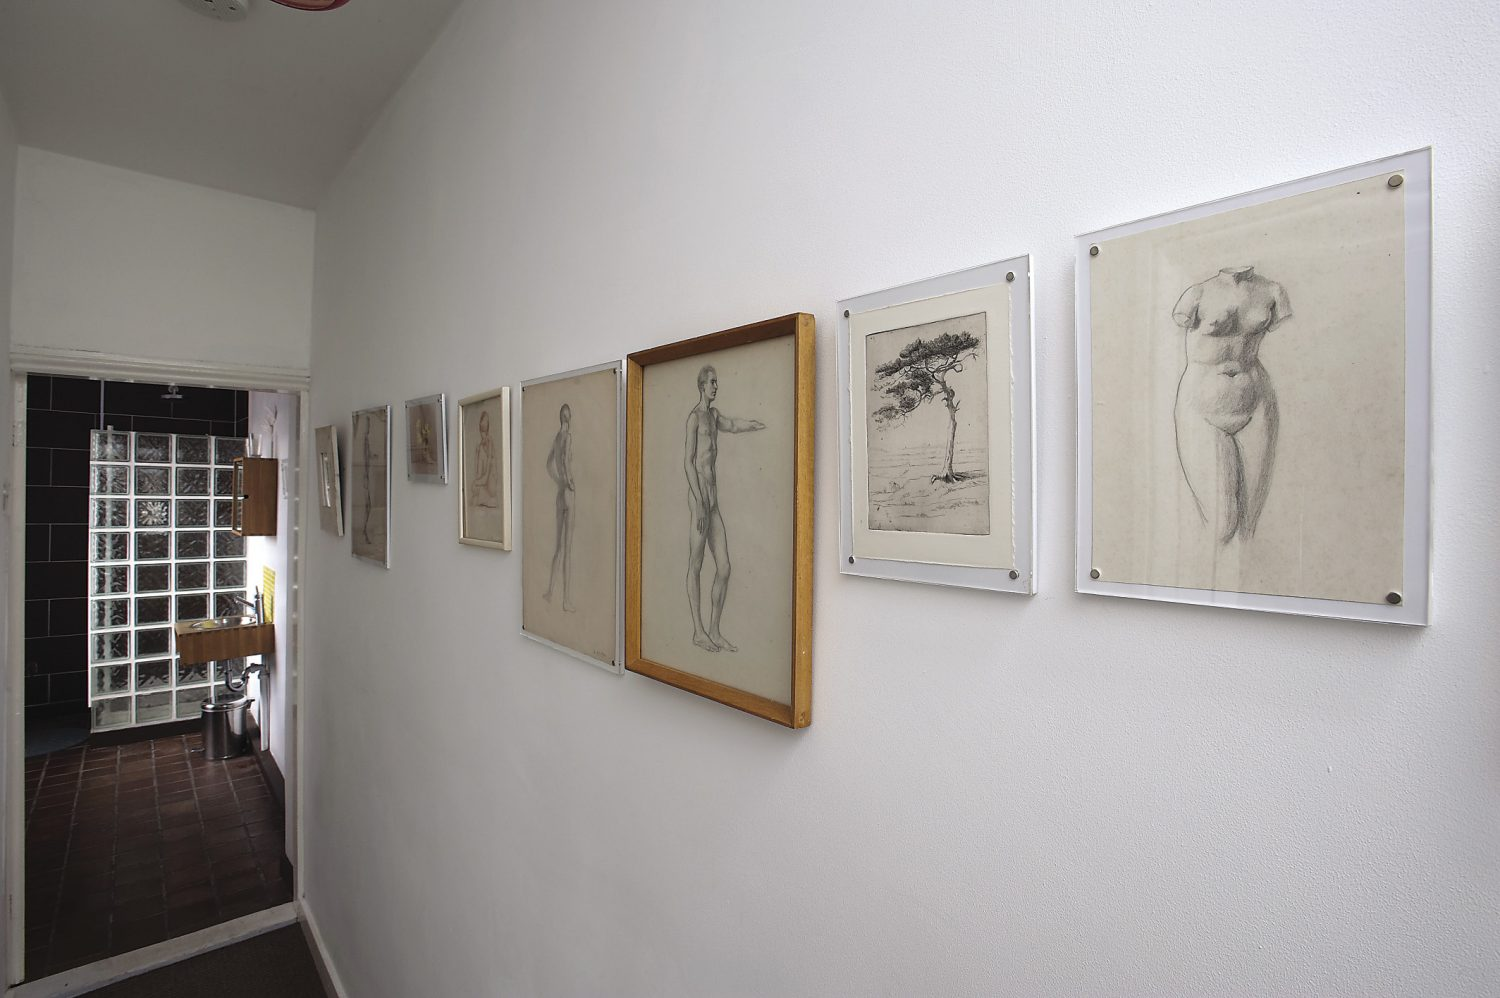 In the B&B the corridor leading to the shower-room displays a collection of pencil and pastel drawings, some of which are by Anna's aunt, Selina Bott-Slack